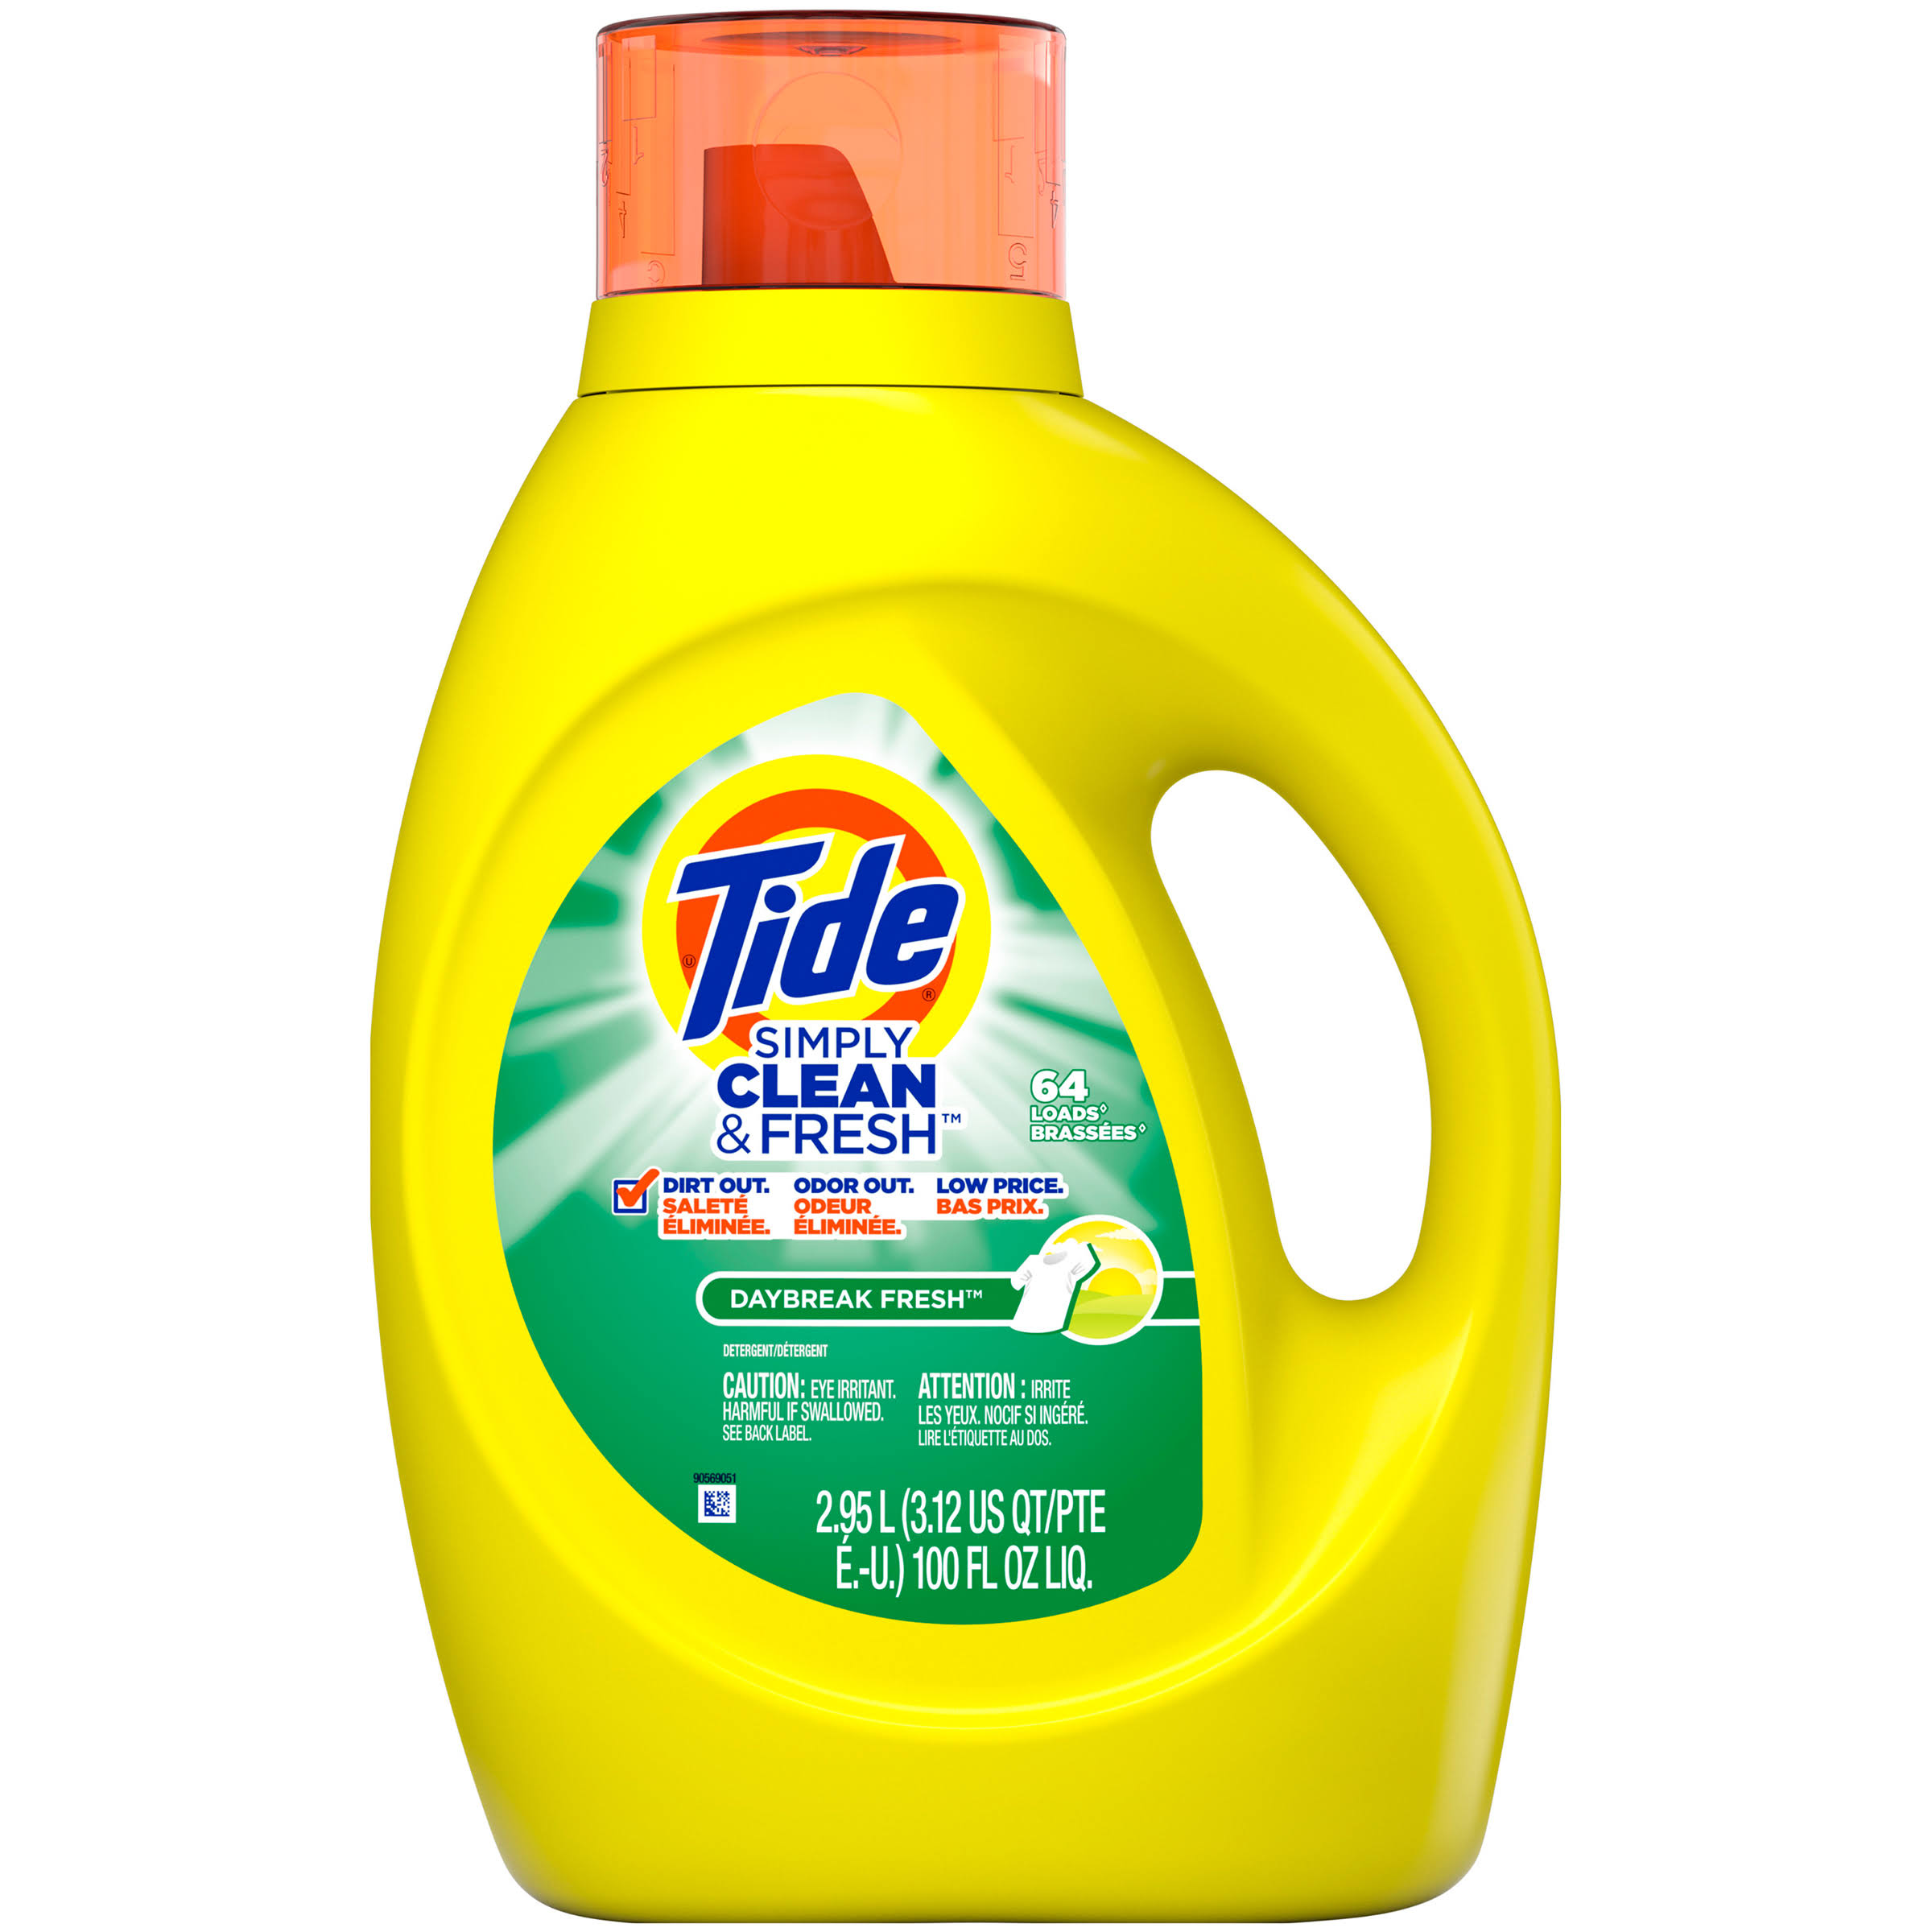 Tide Simply Clean and Fresh Daybreak Fresh Detergent - 64 Loads, 100oz